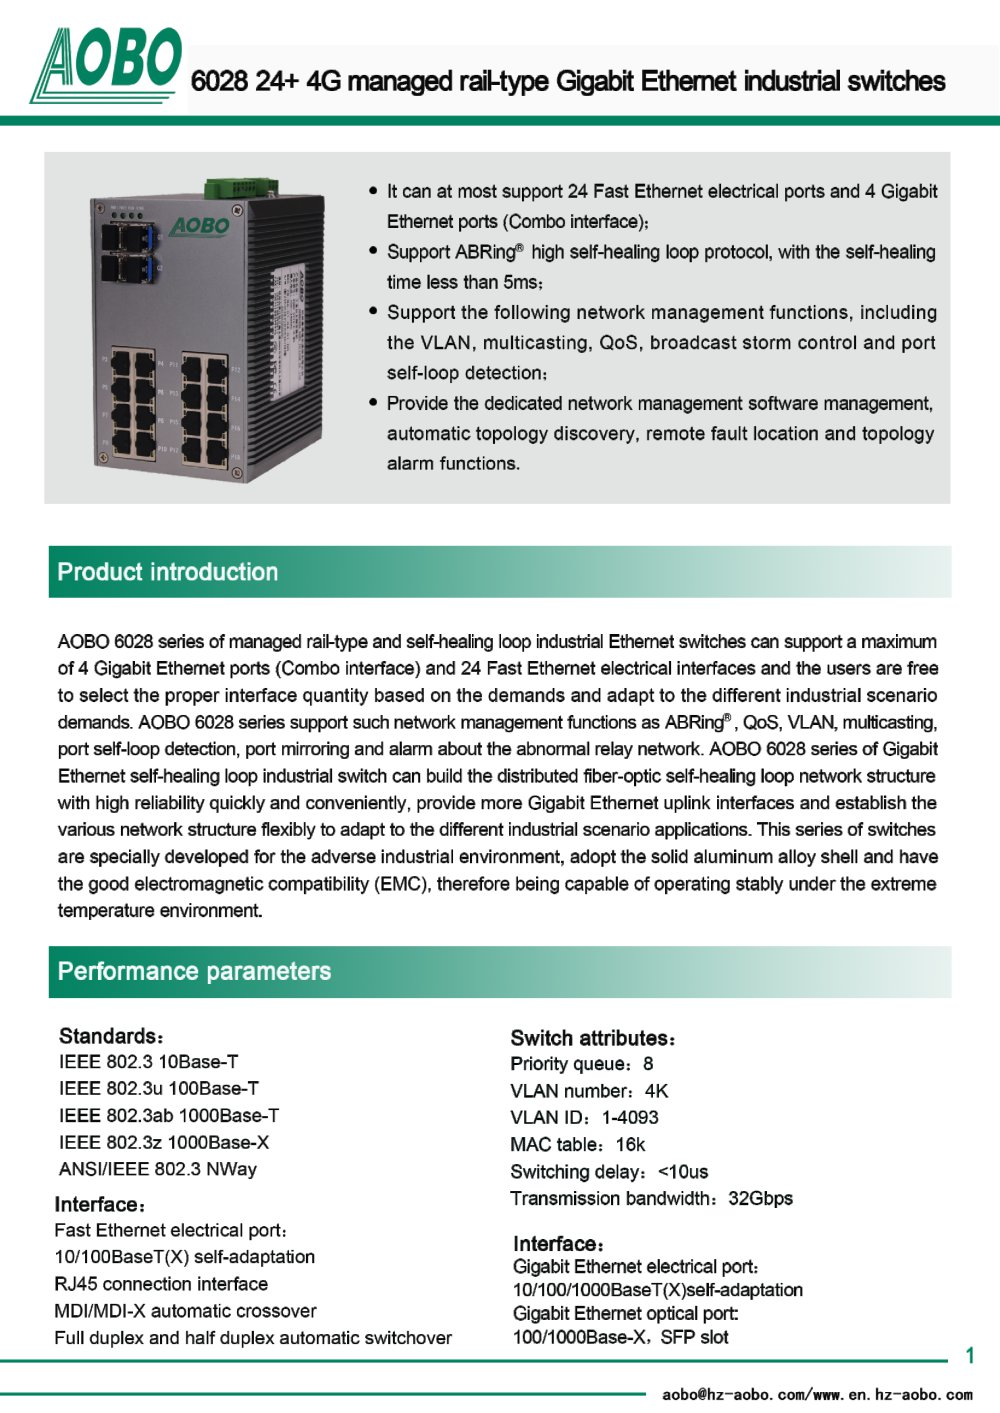 24+4G managed rail-type Gigabit Industrial Ethernet Switches/AOBO ...